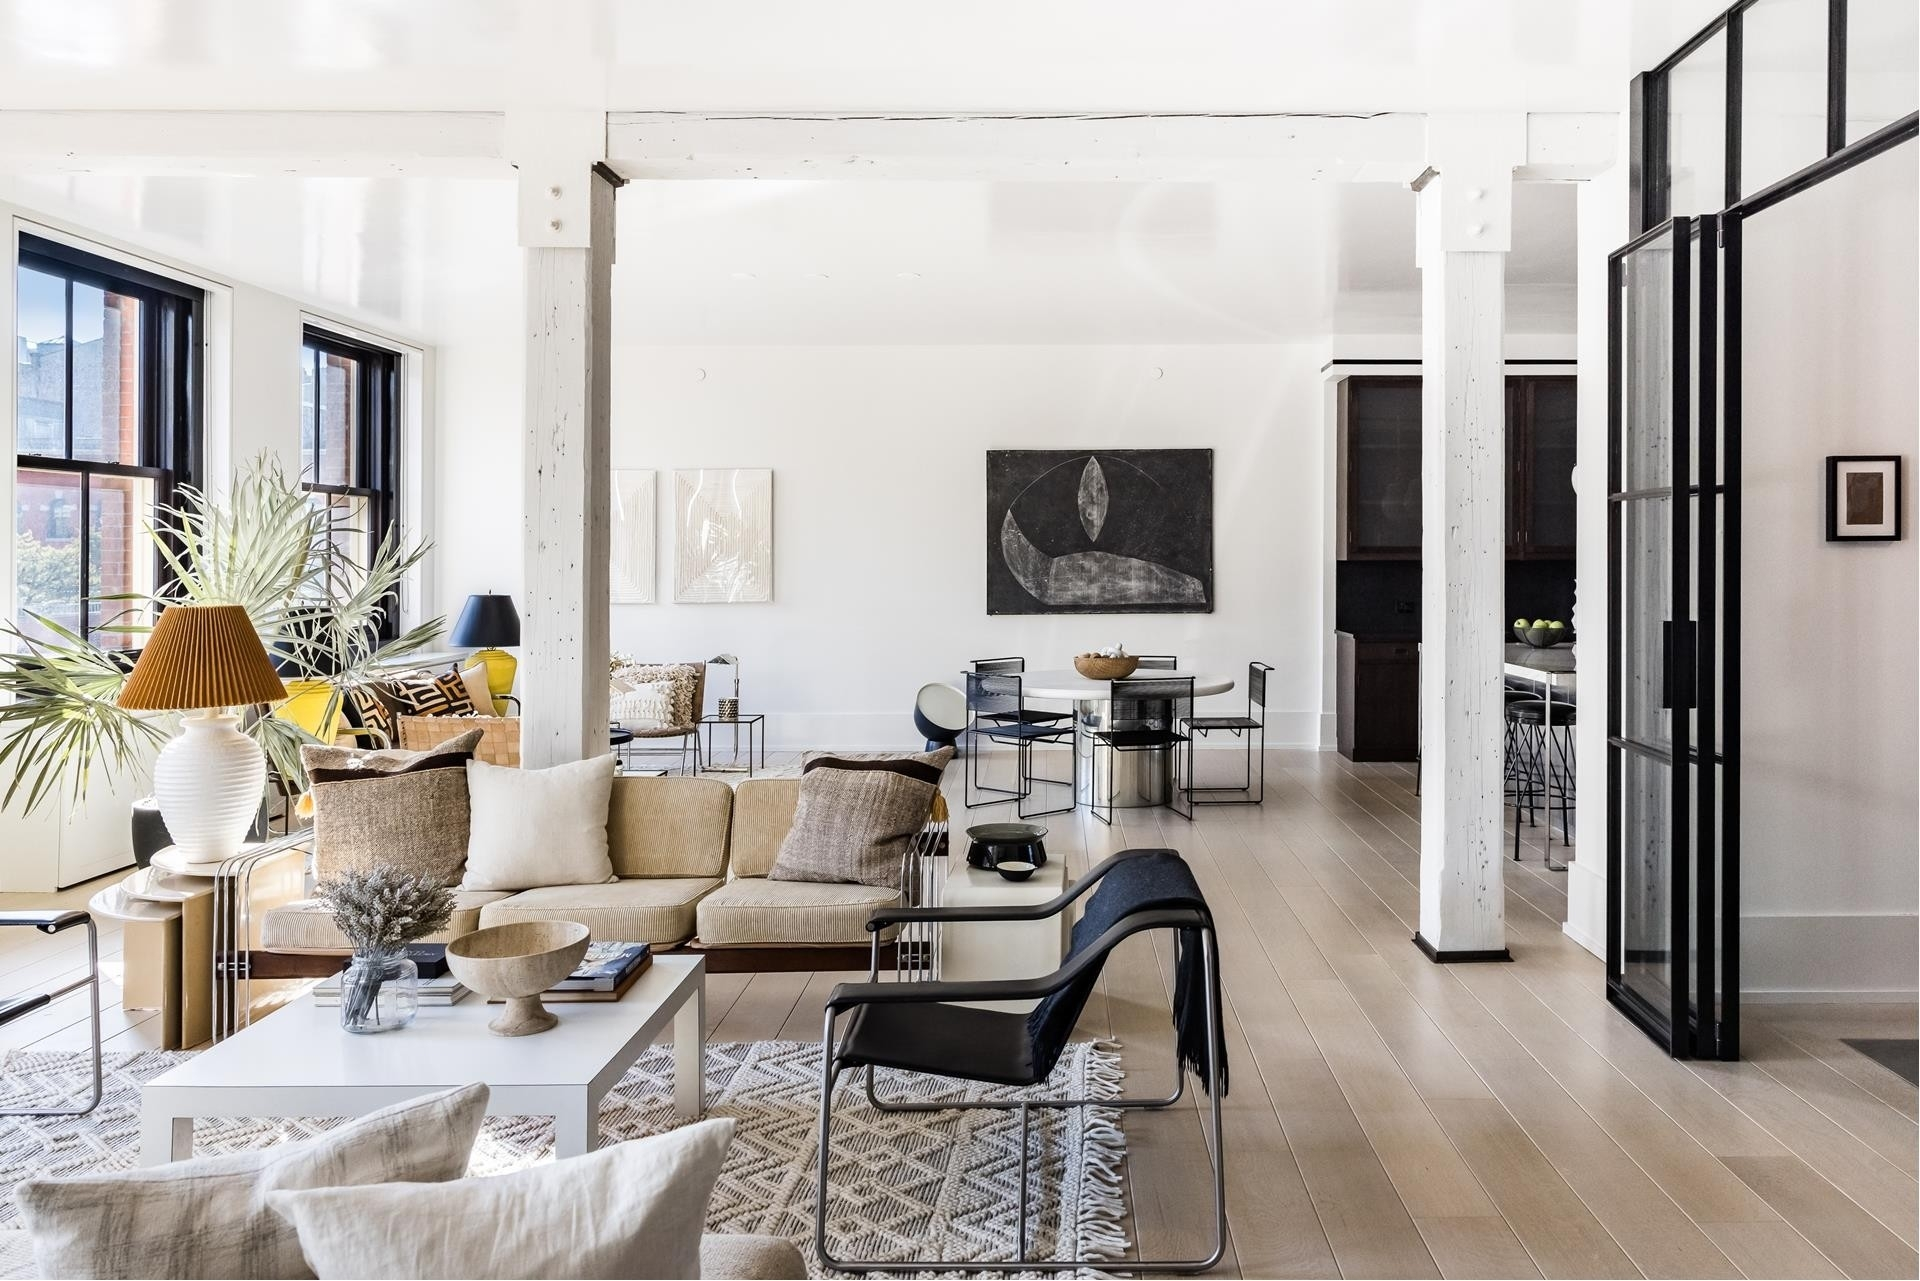 Property в 443 GREENWICH ST , 6C TriBeCa, New York, NY 10013